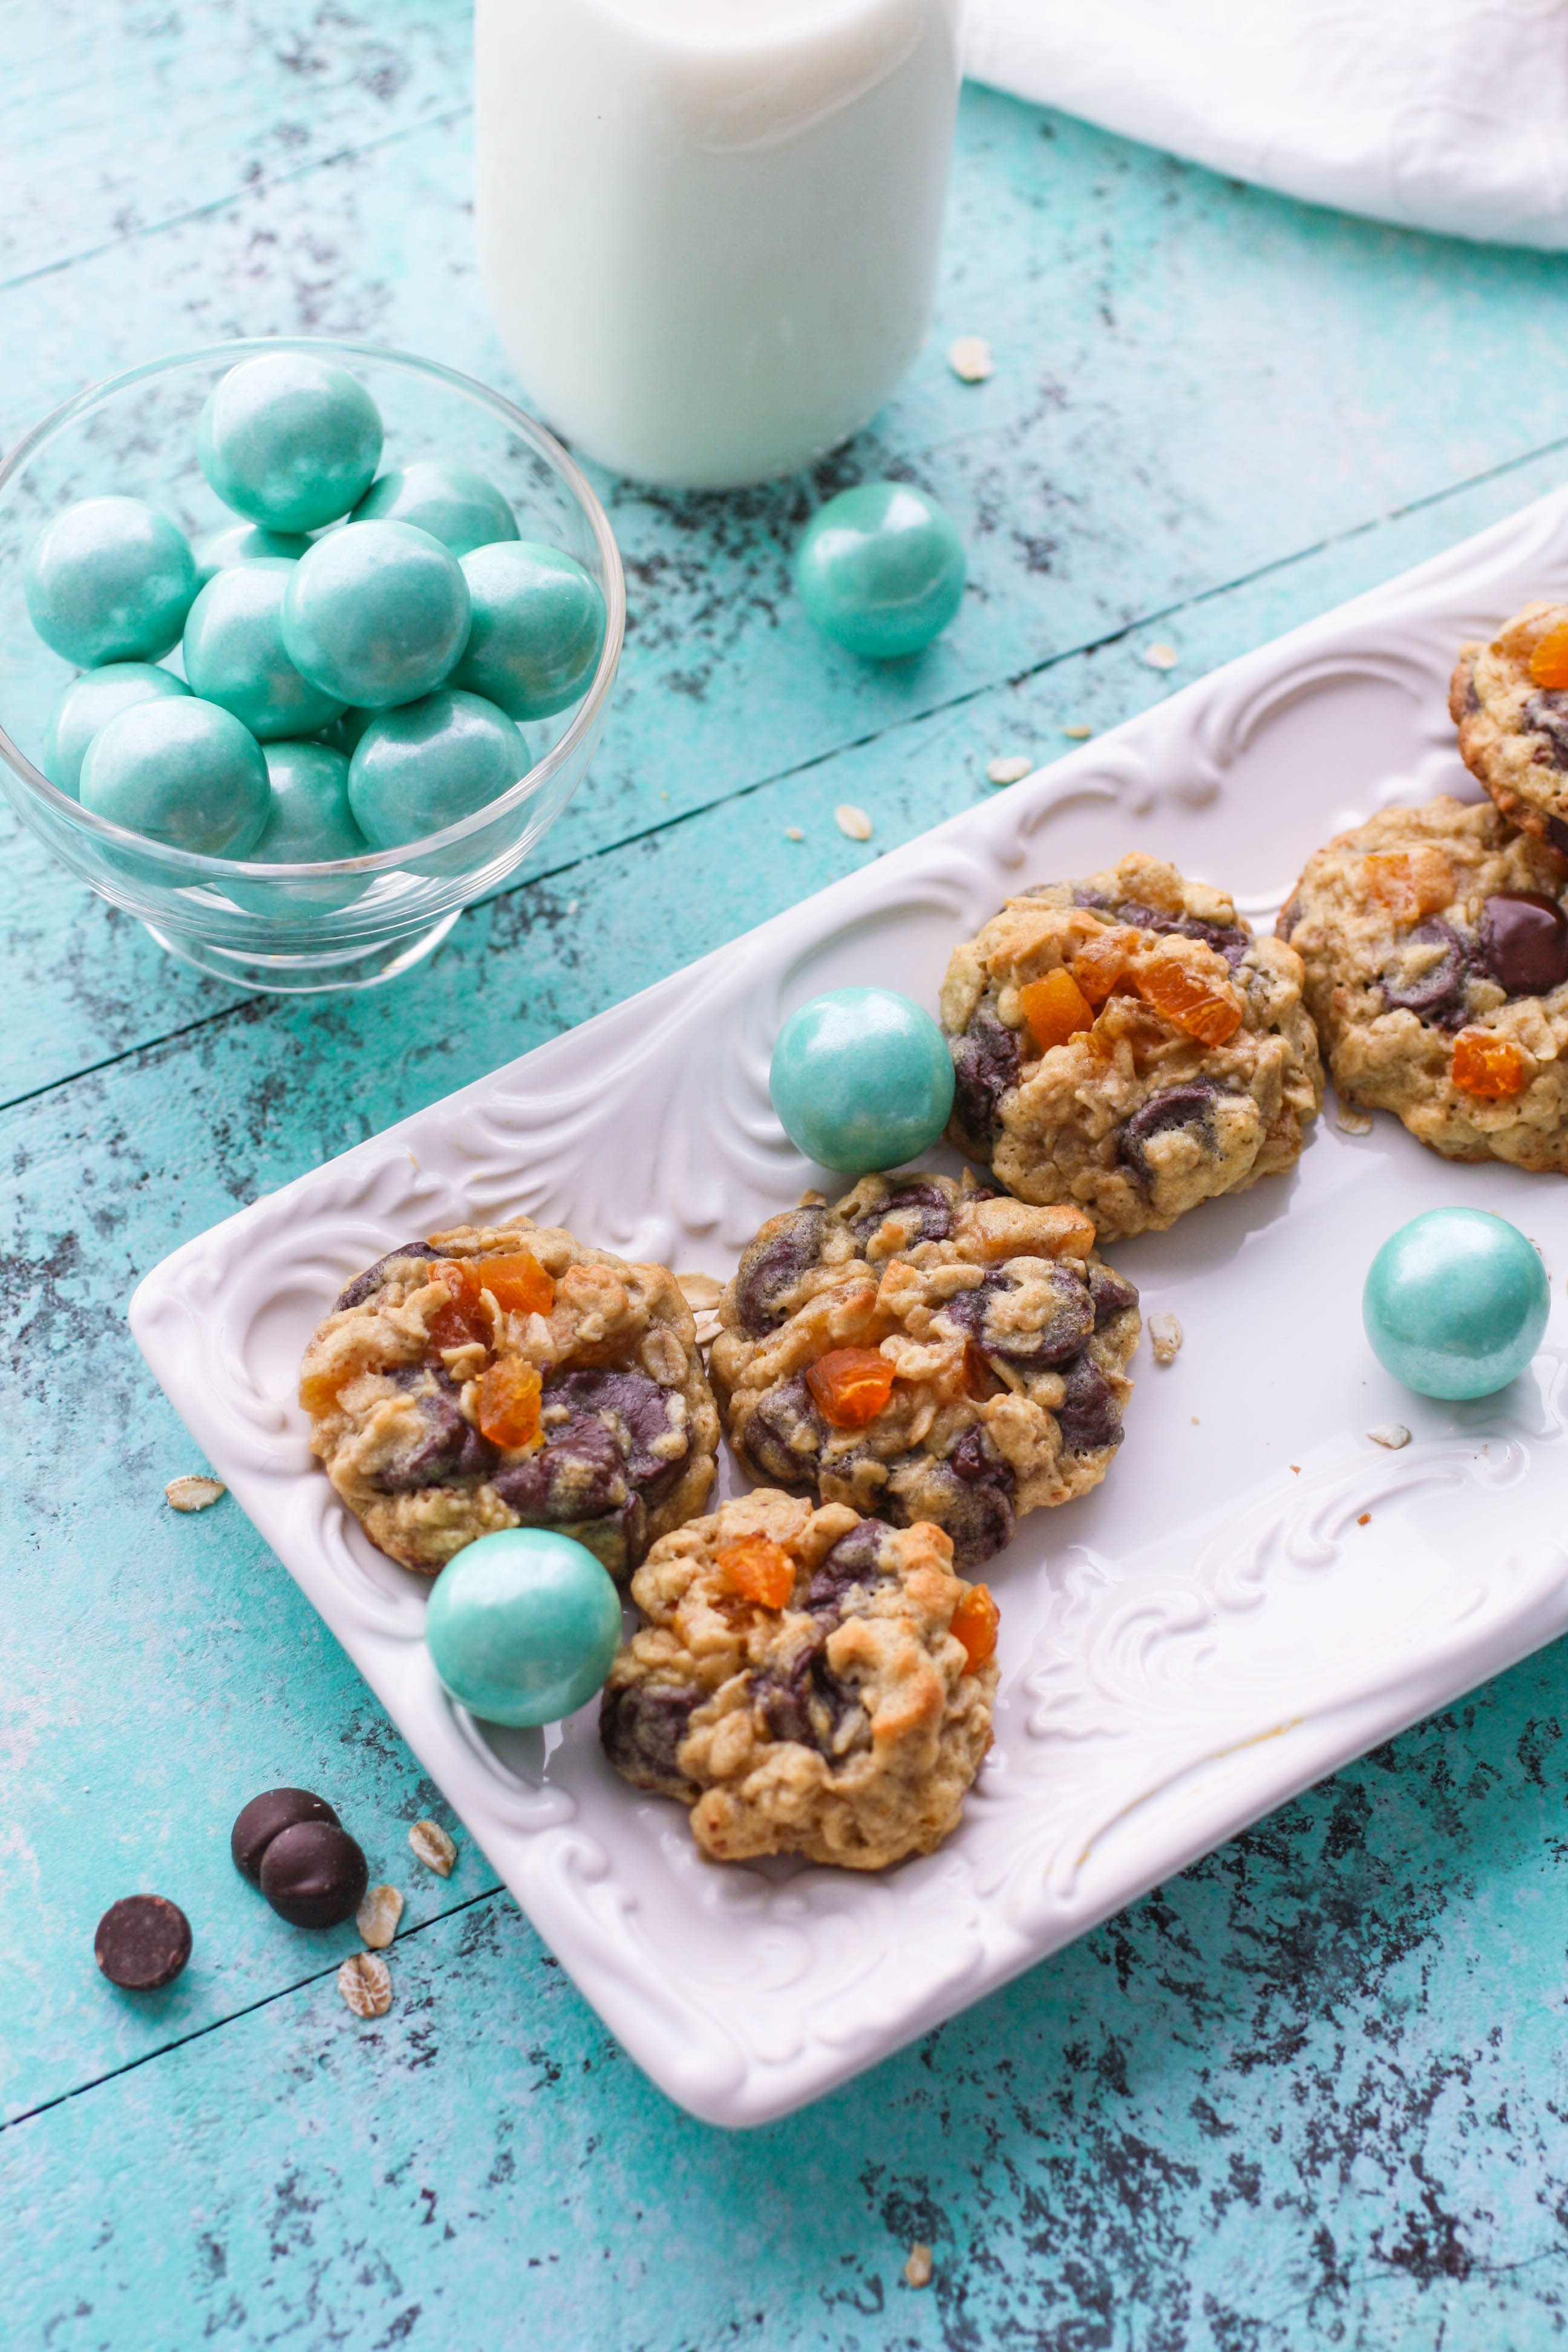 Dark Chocolate Apricot Oatmeal Cookies are a tasty treat filled with goodies! These Dark Chocolate Apricot Oatmeal Cookies are such a fun treat to enjoy!